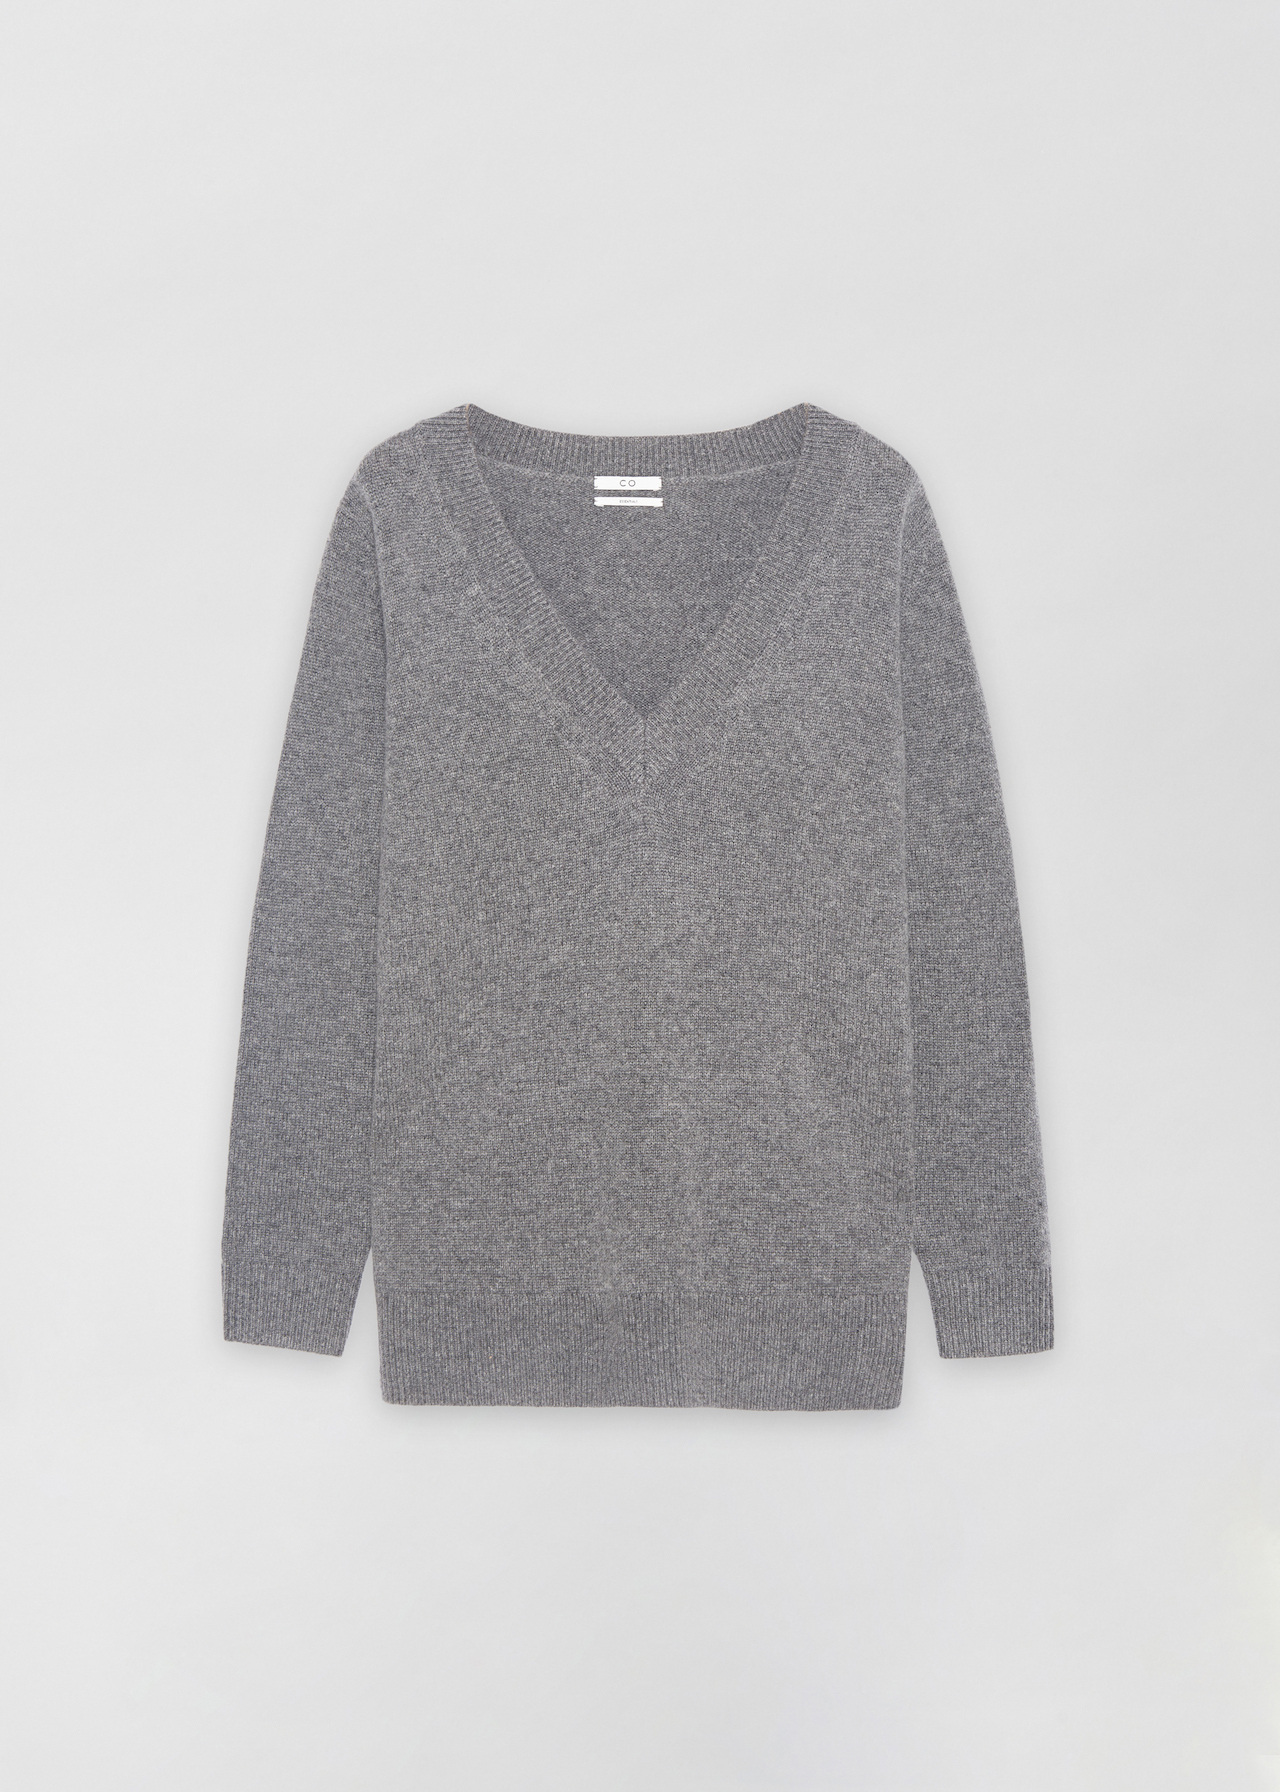 V-Neck Boyfriend Sweater in Wool Cashmere - Brown in Grey by Co Collections